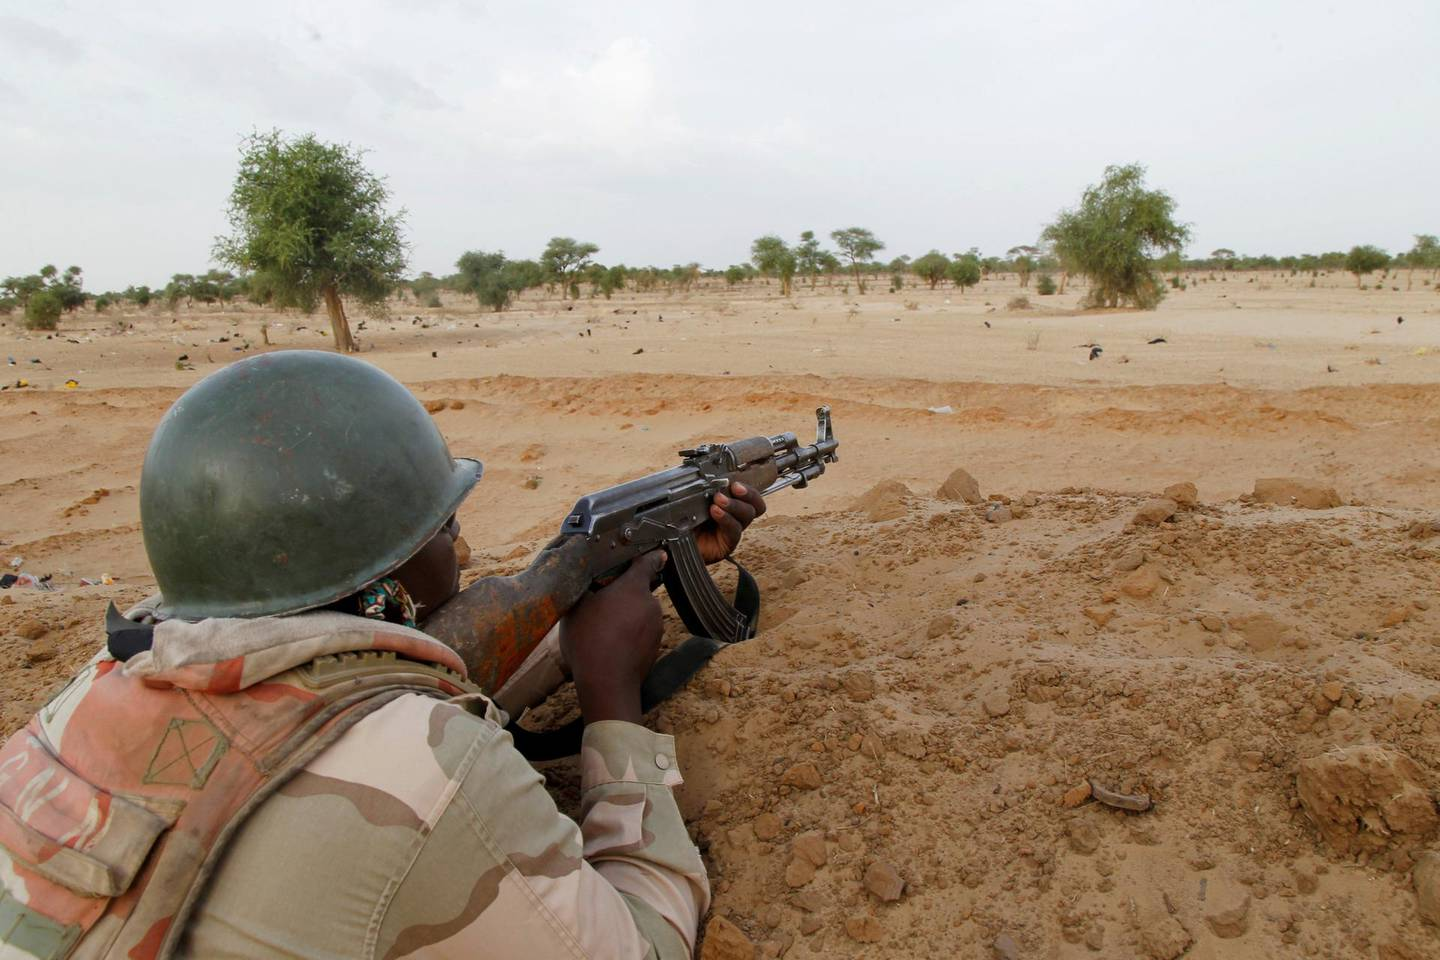 FILE PHOTO: A Niger soldier guards with his weapon pointed towards the border with neighbouring Nigeria, near the town of Diffa, Niger, June 21, 2016. Picture taken June 21, 2016. REUTERS/Luc Gnago/File Photo